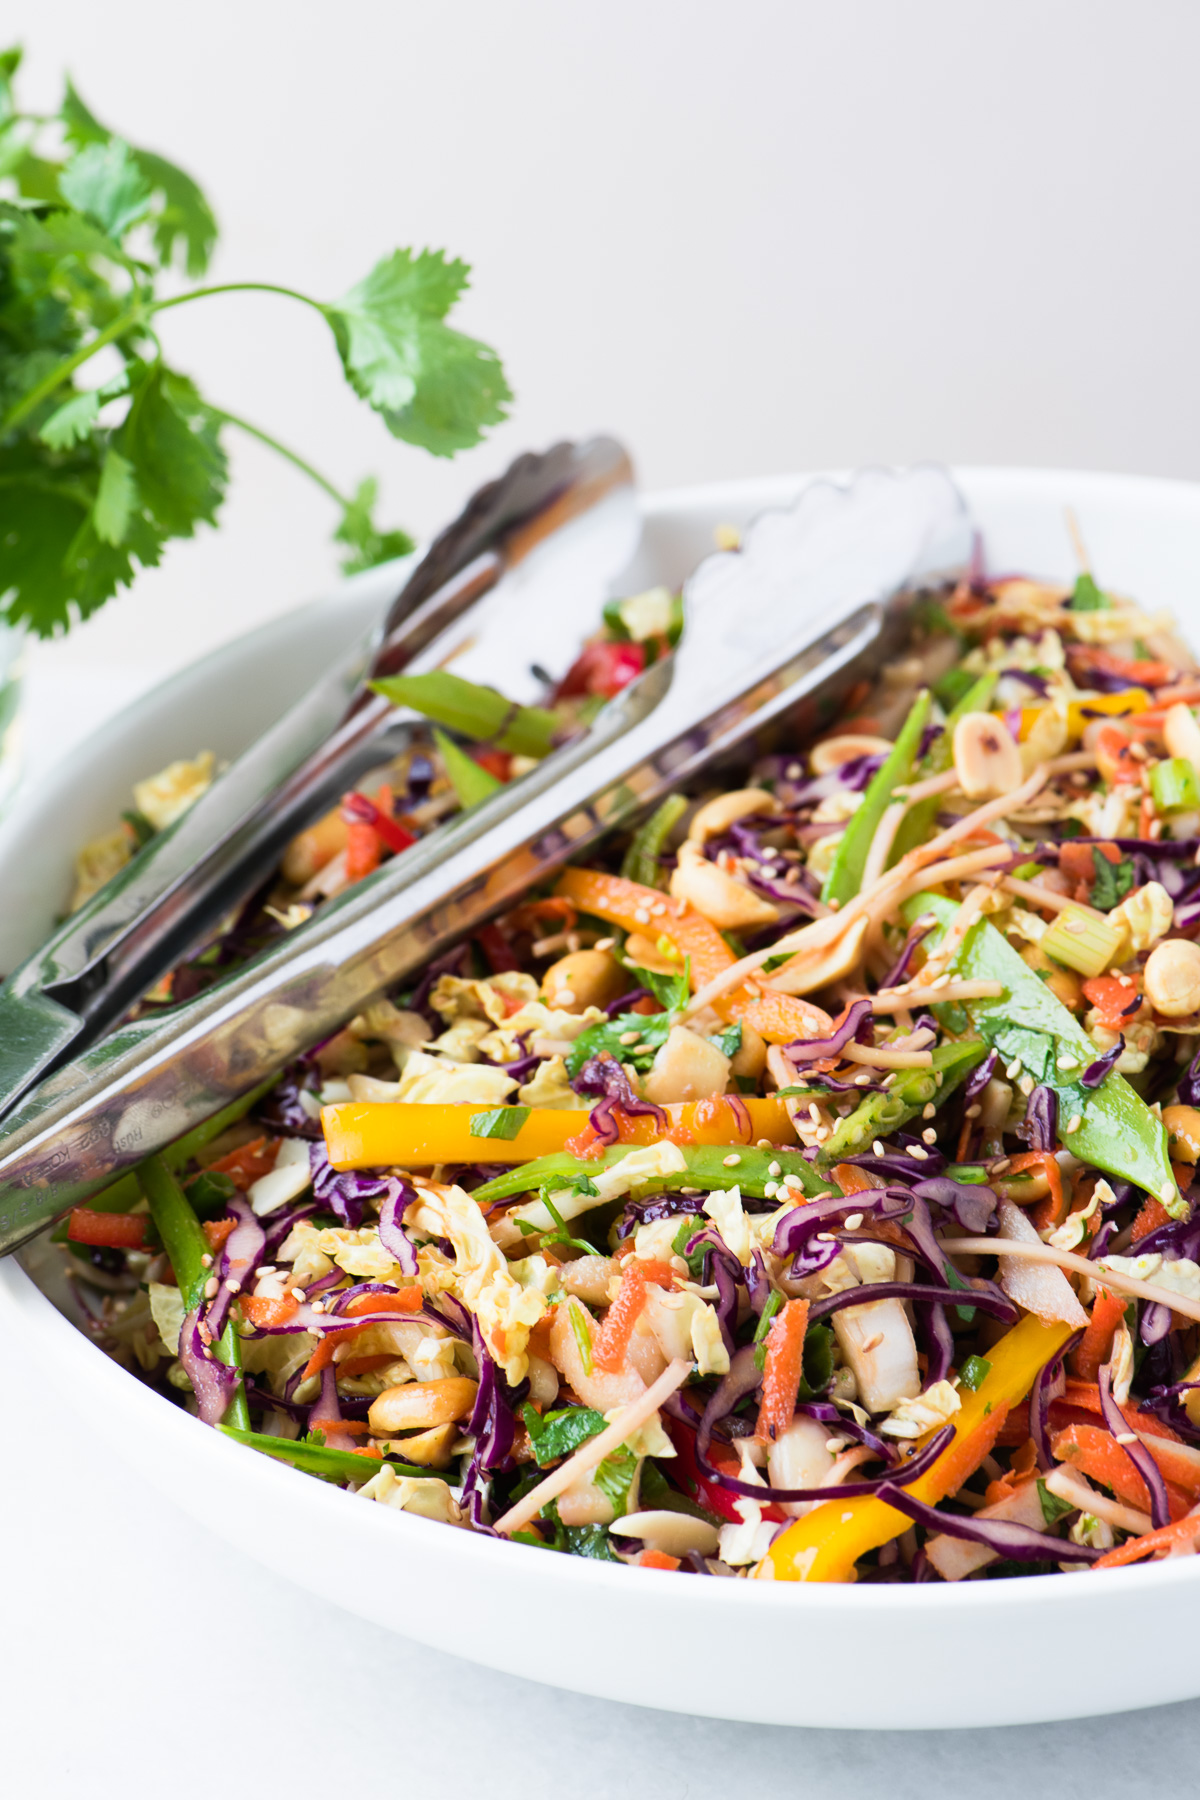 Colorful Asian Slaw in a white bowl